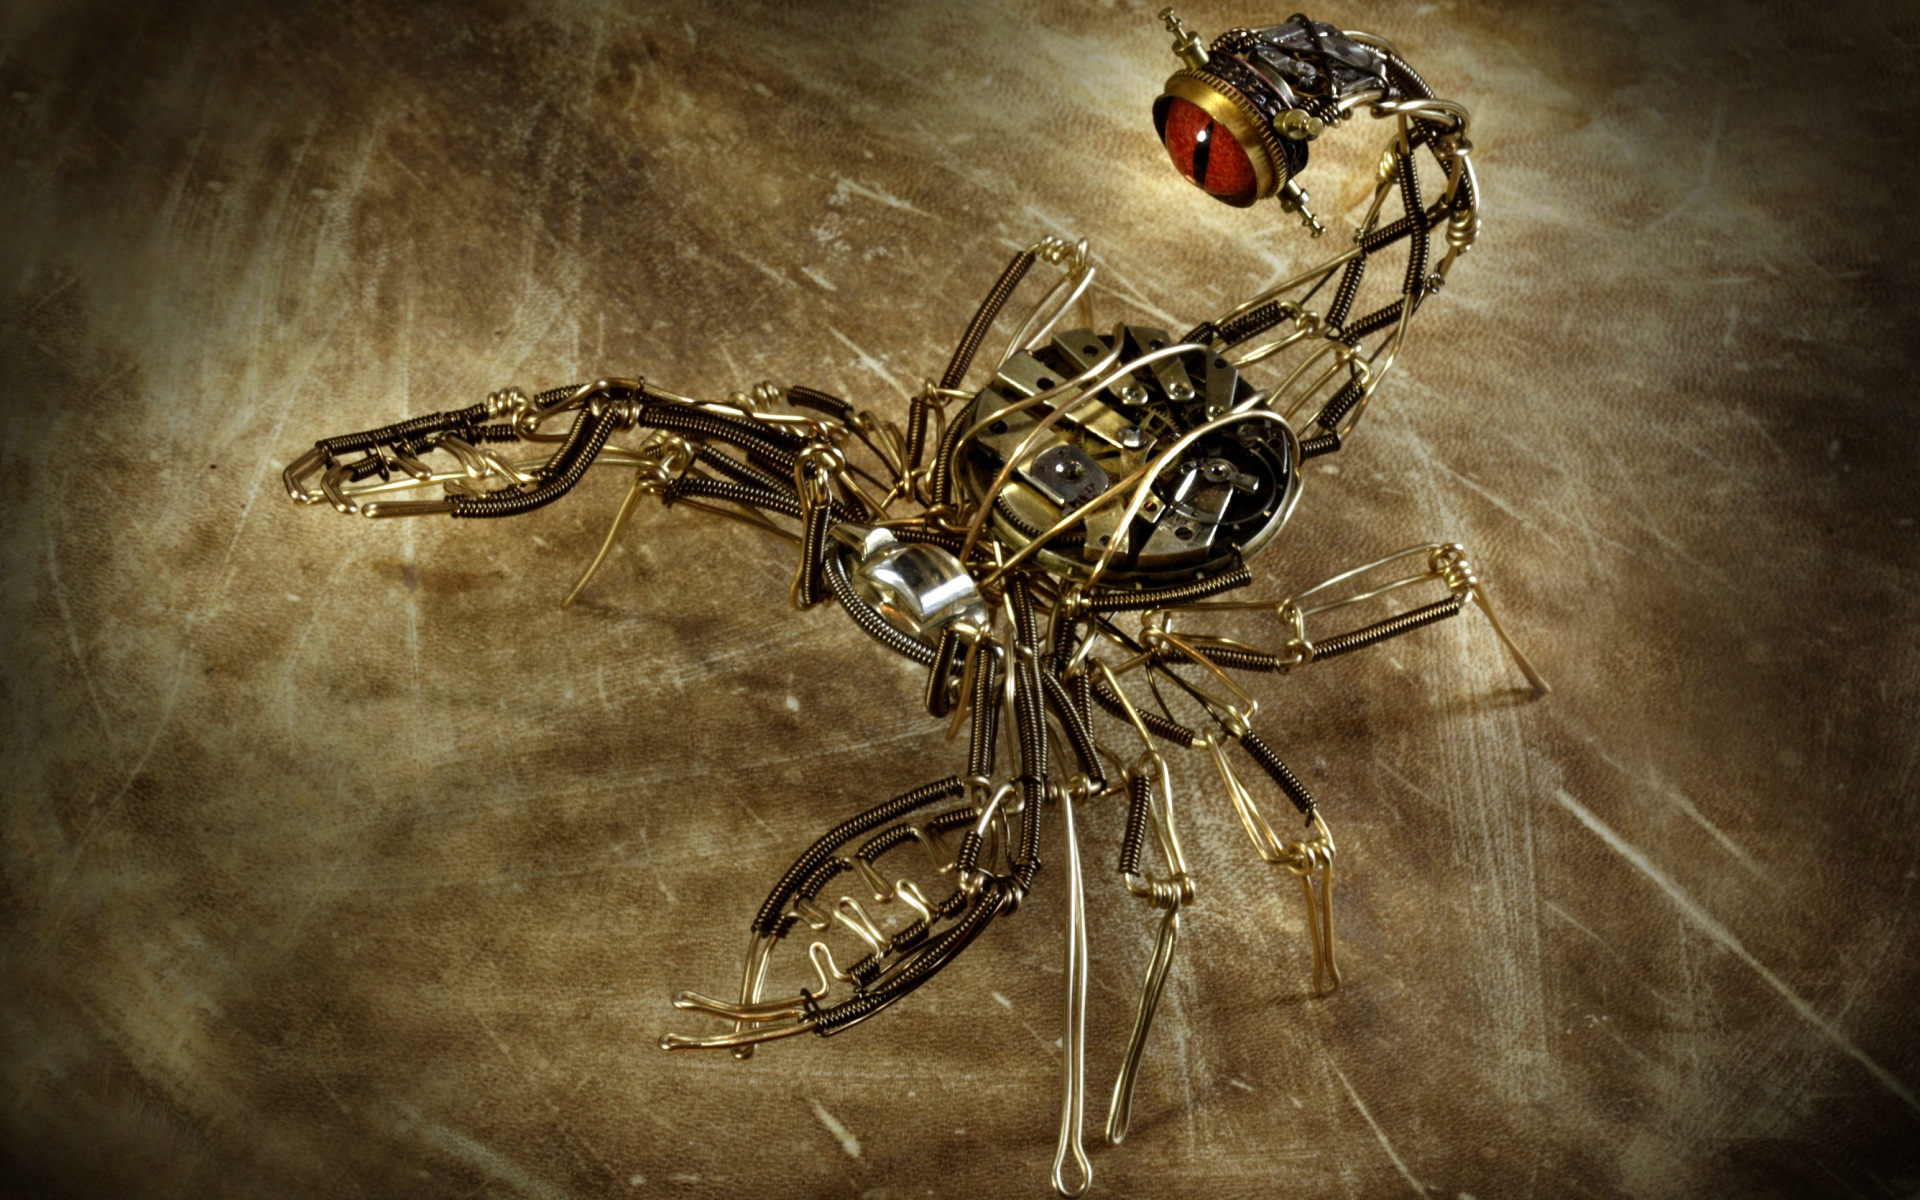 Steampunk Machine Scorpion mechanical wallpaper 1920x1200 62476 1920x1200